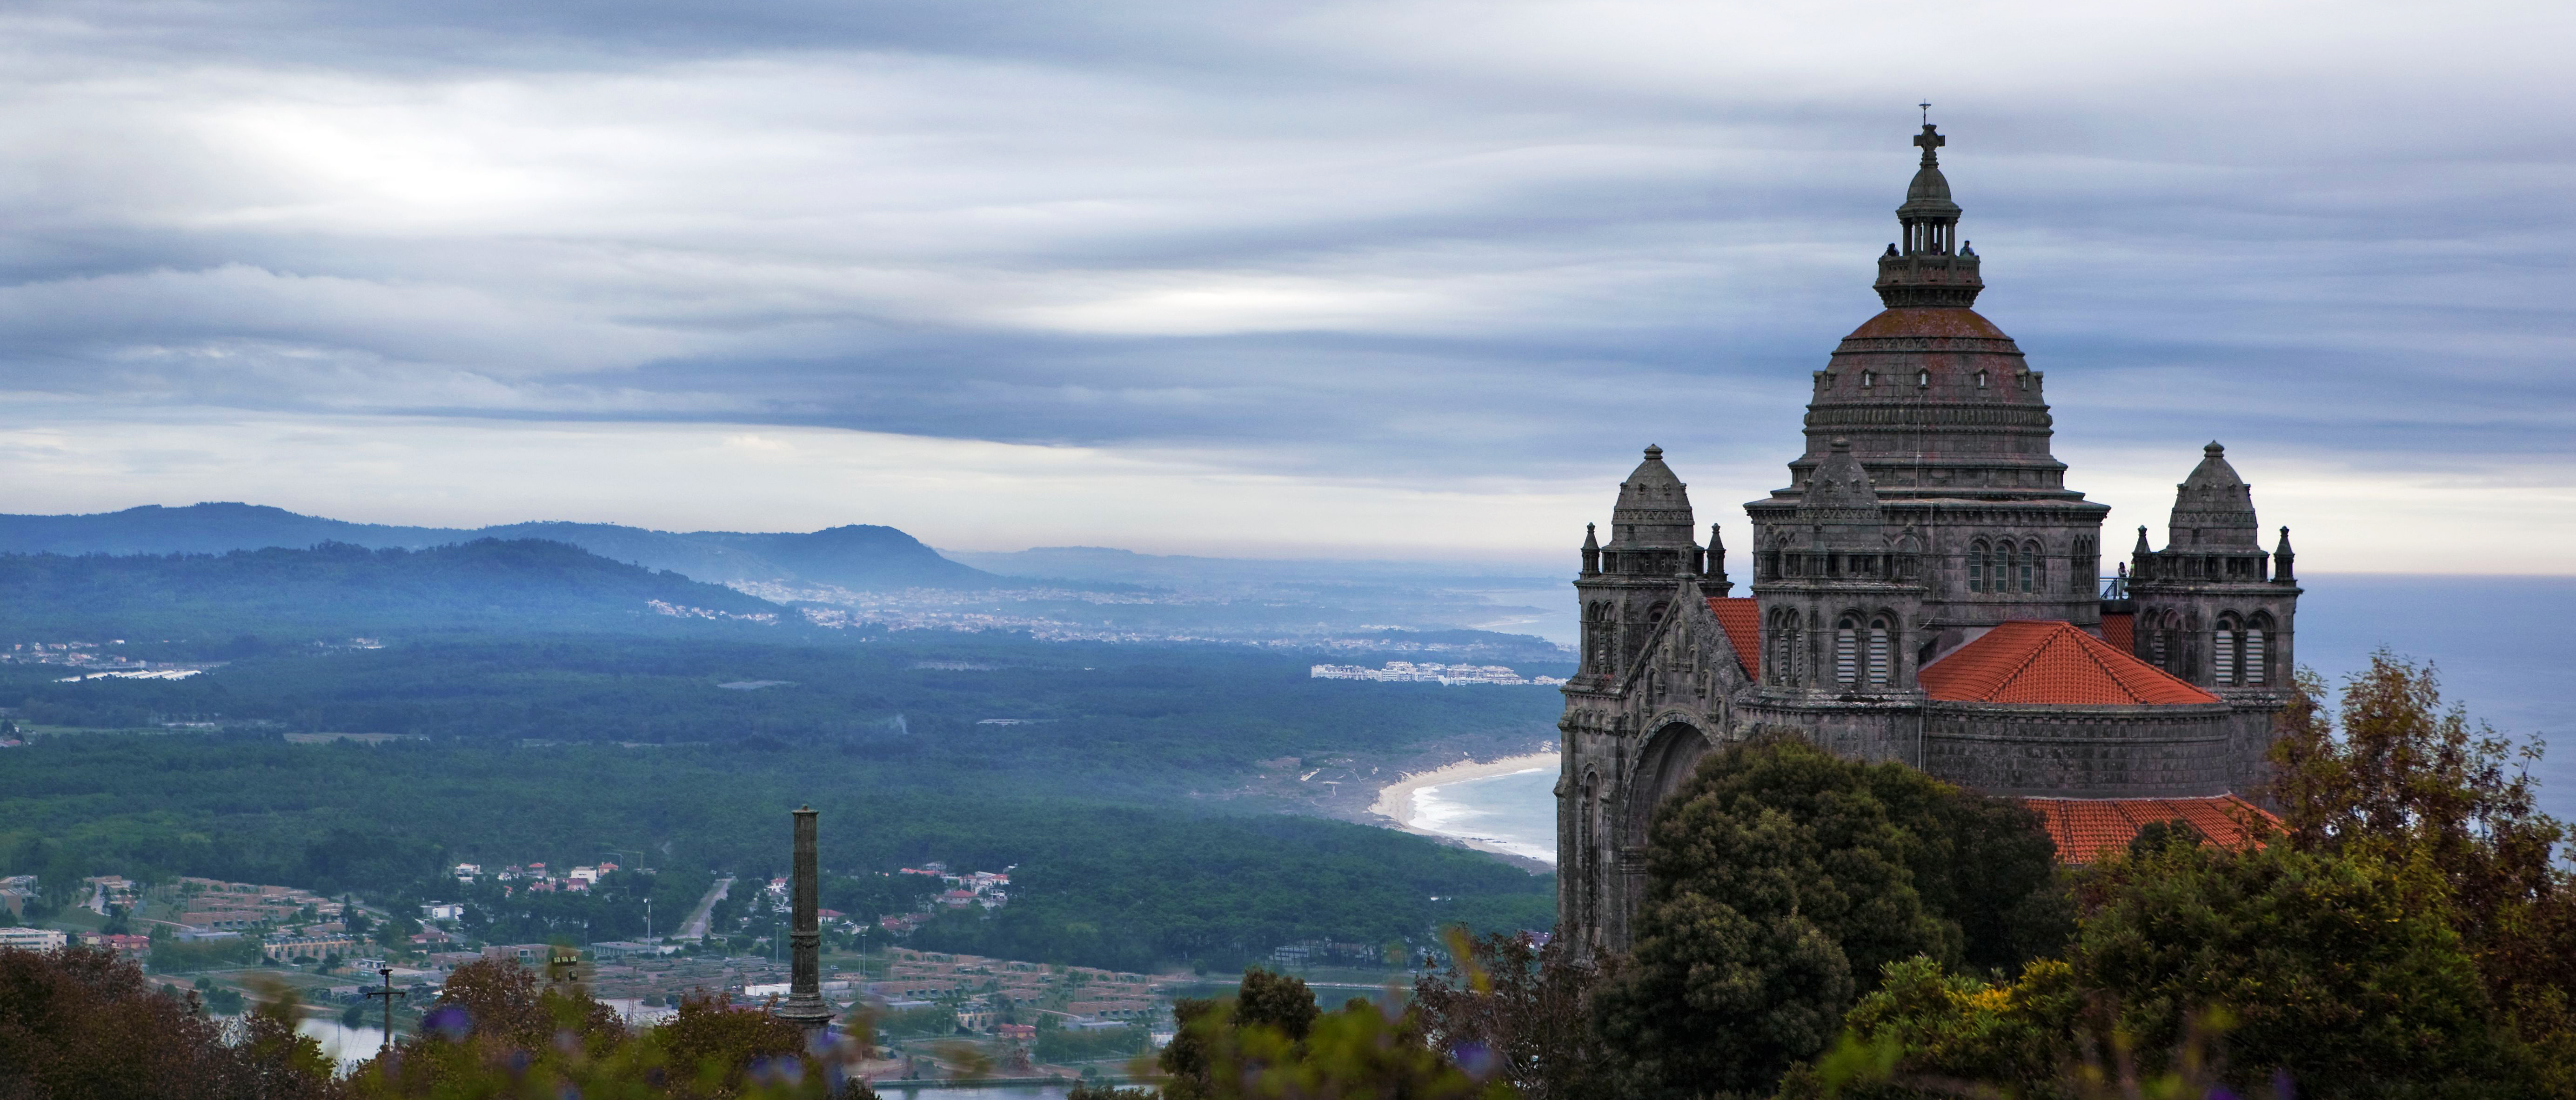 Viana_do_Castelo_View1